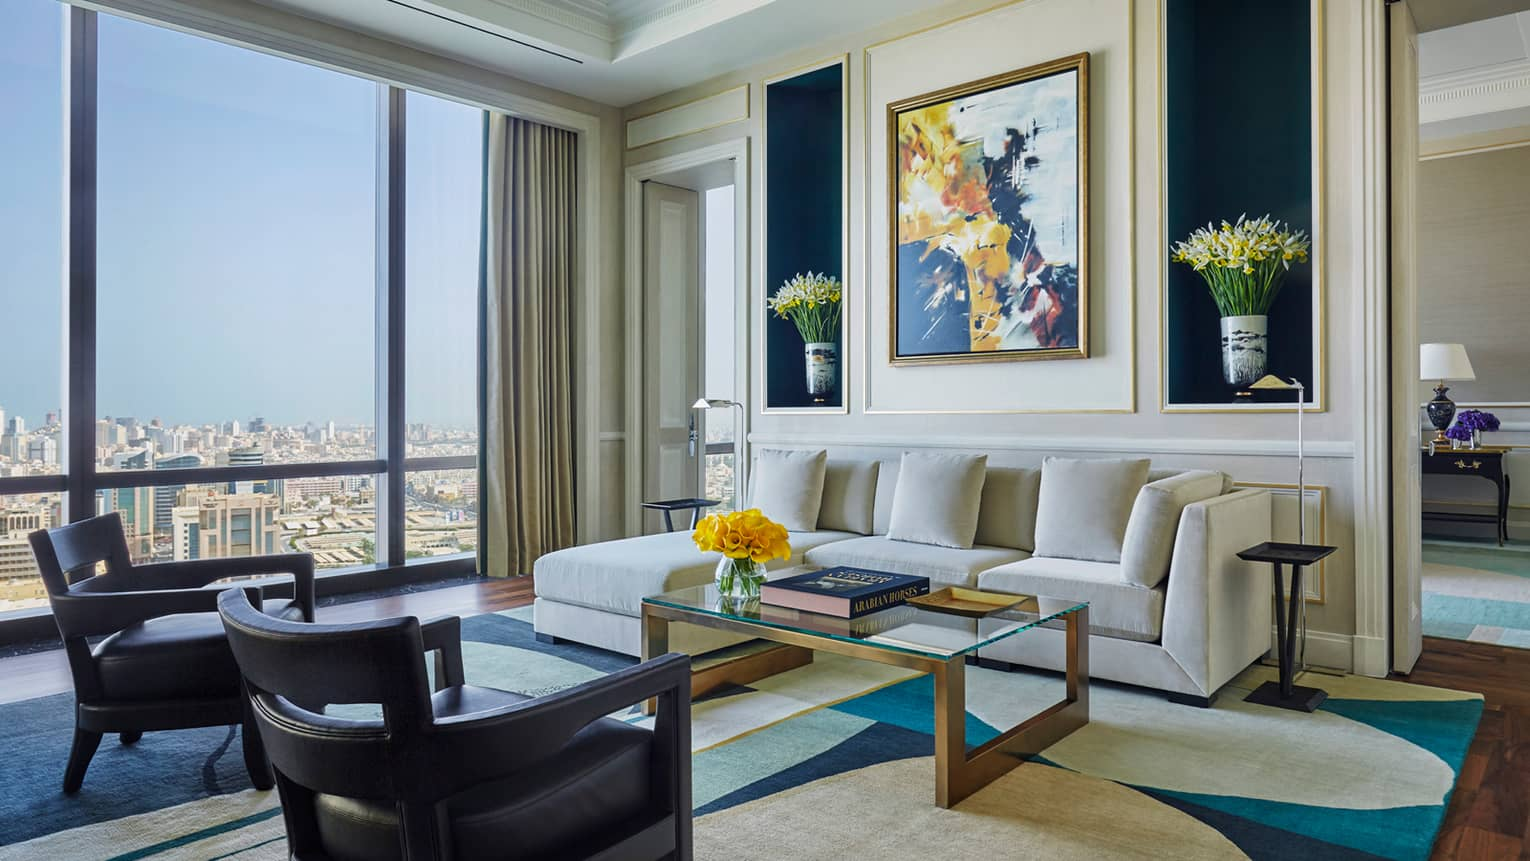 Hotel room living area with L-shaped white sofa, two small armchairs, coffee table with books, colourful painting, flowers